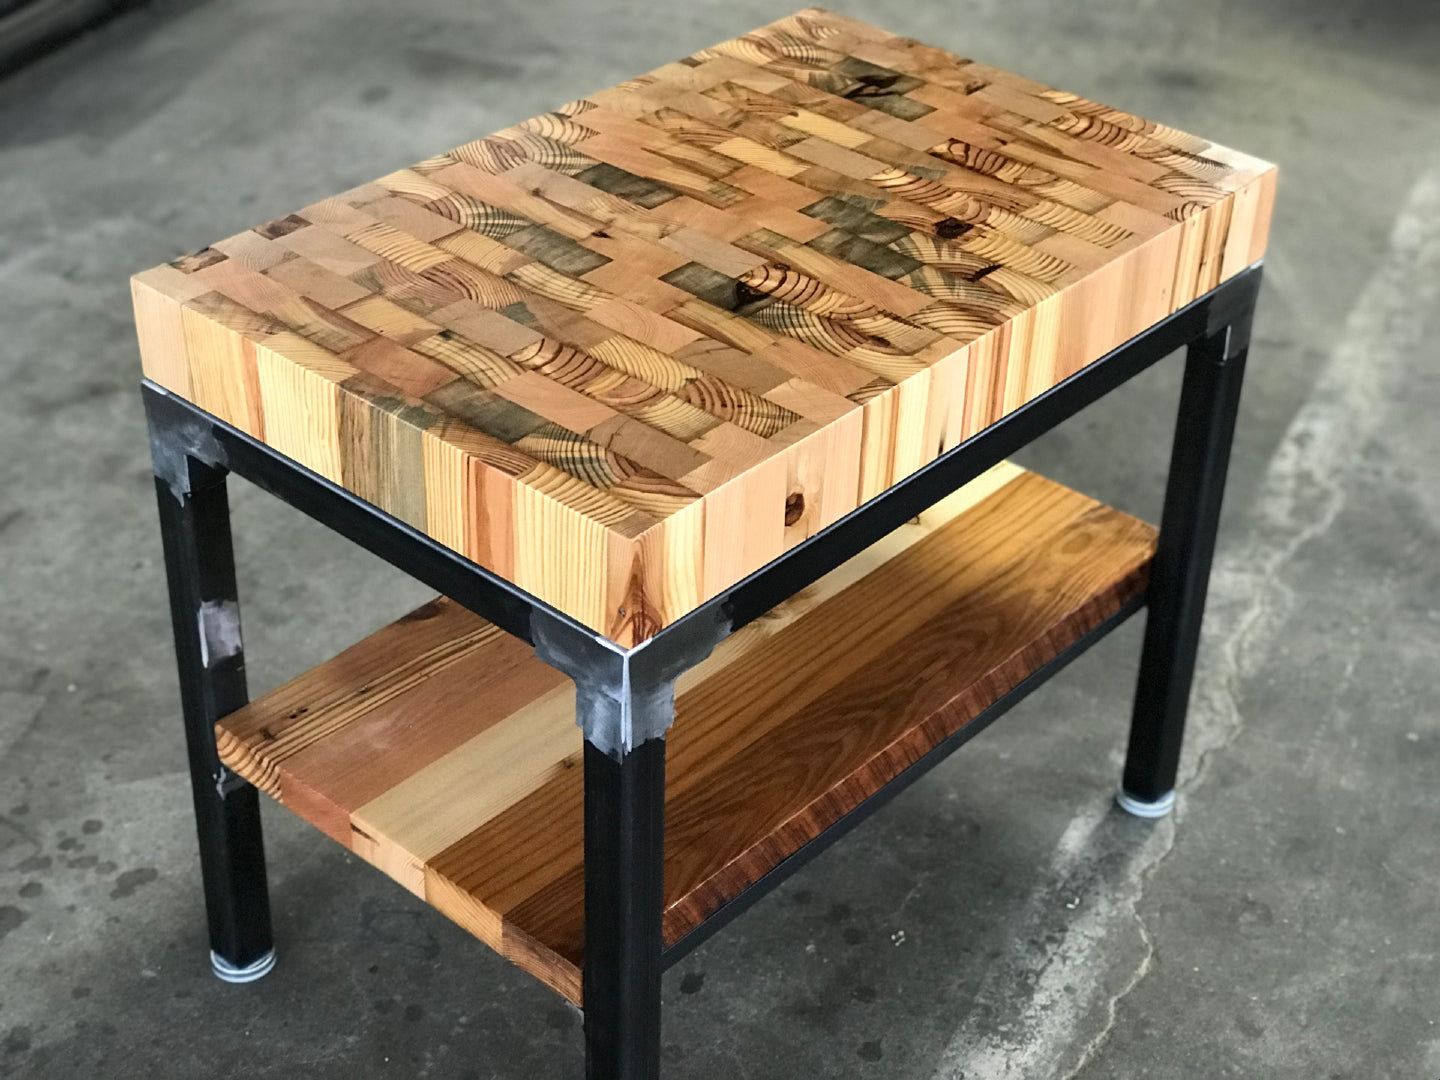 Butcher Block Reclaimed Wood End Table Workshop